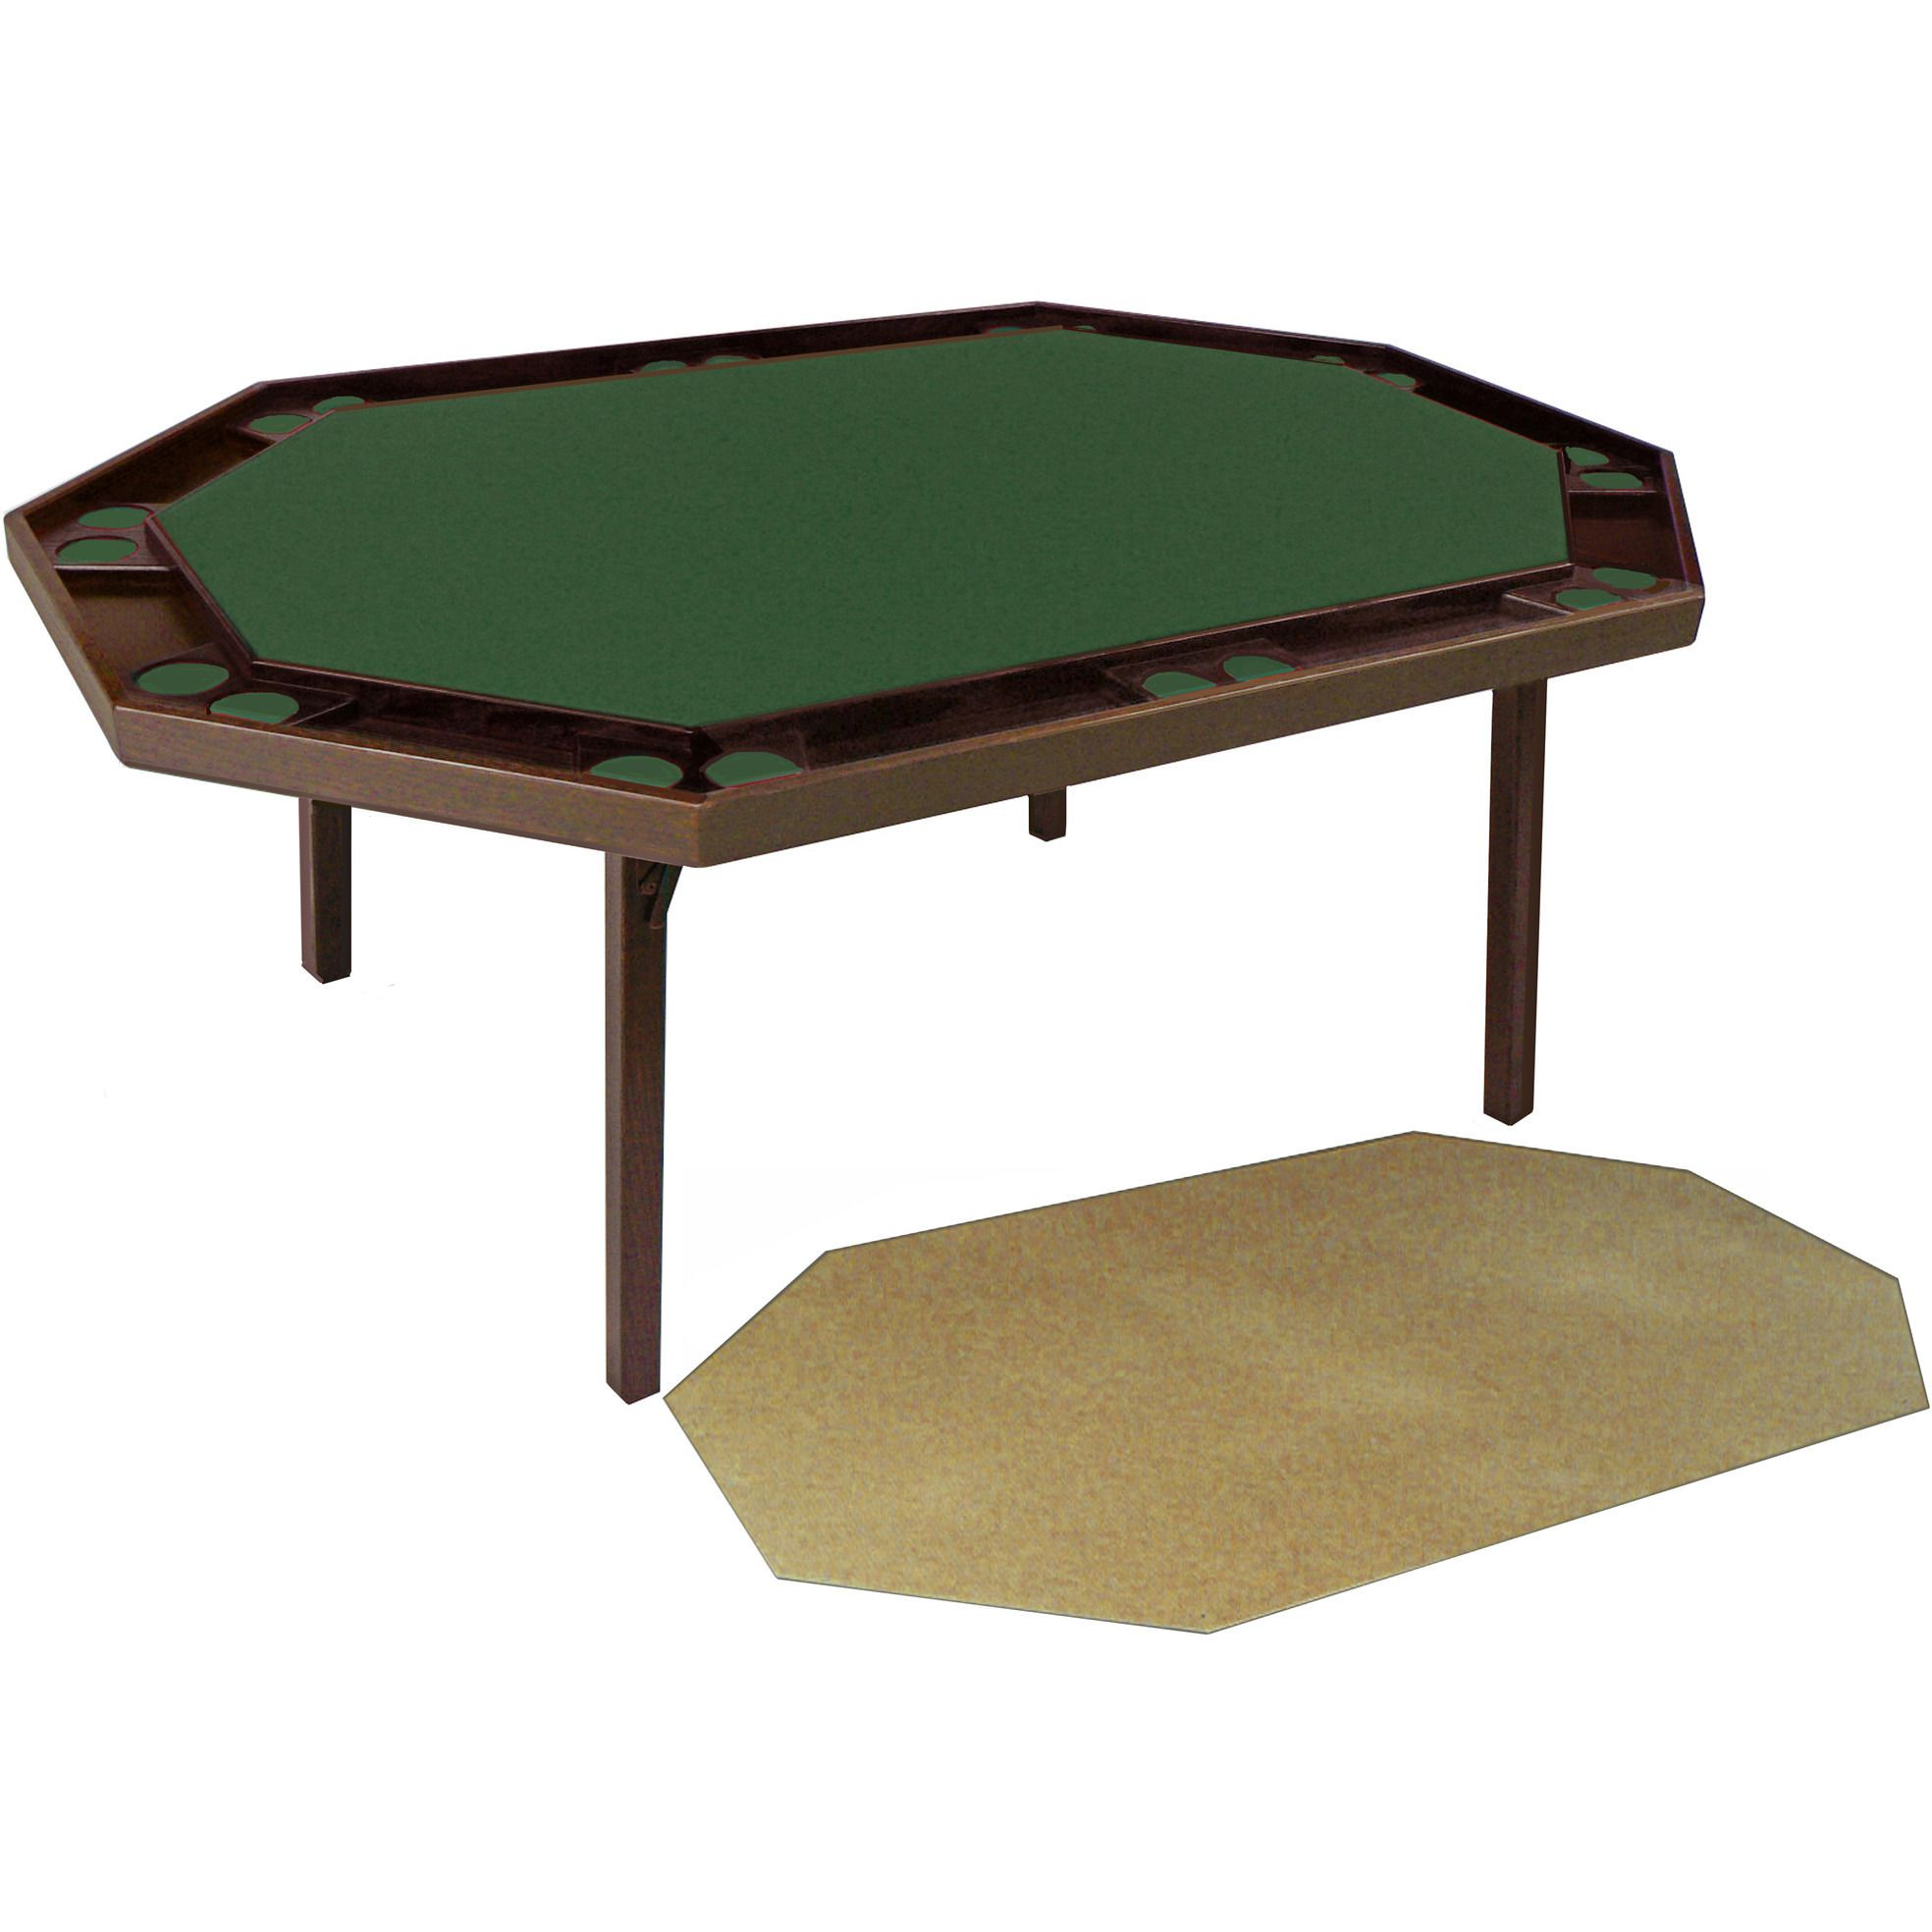 Maple Deluxe Folding Poker Table Includes A Utility Service Top By Kestell M 872 Folding Poker Table Poker Table Poker Table For Sale